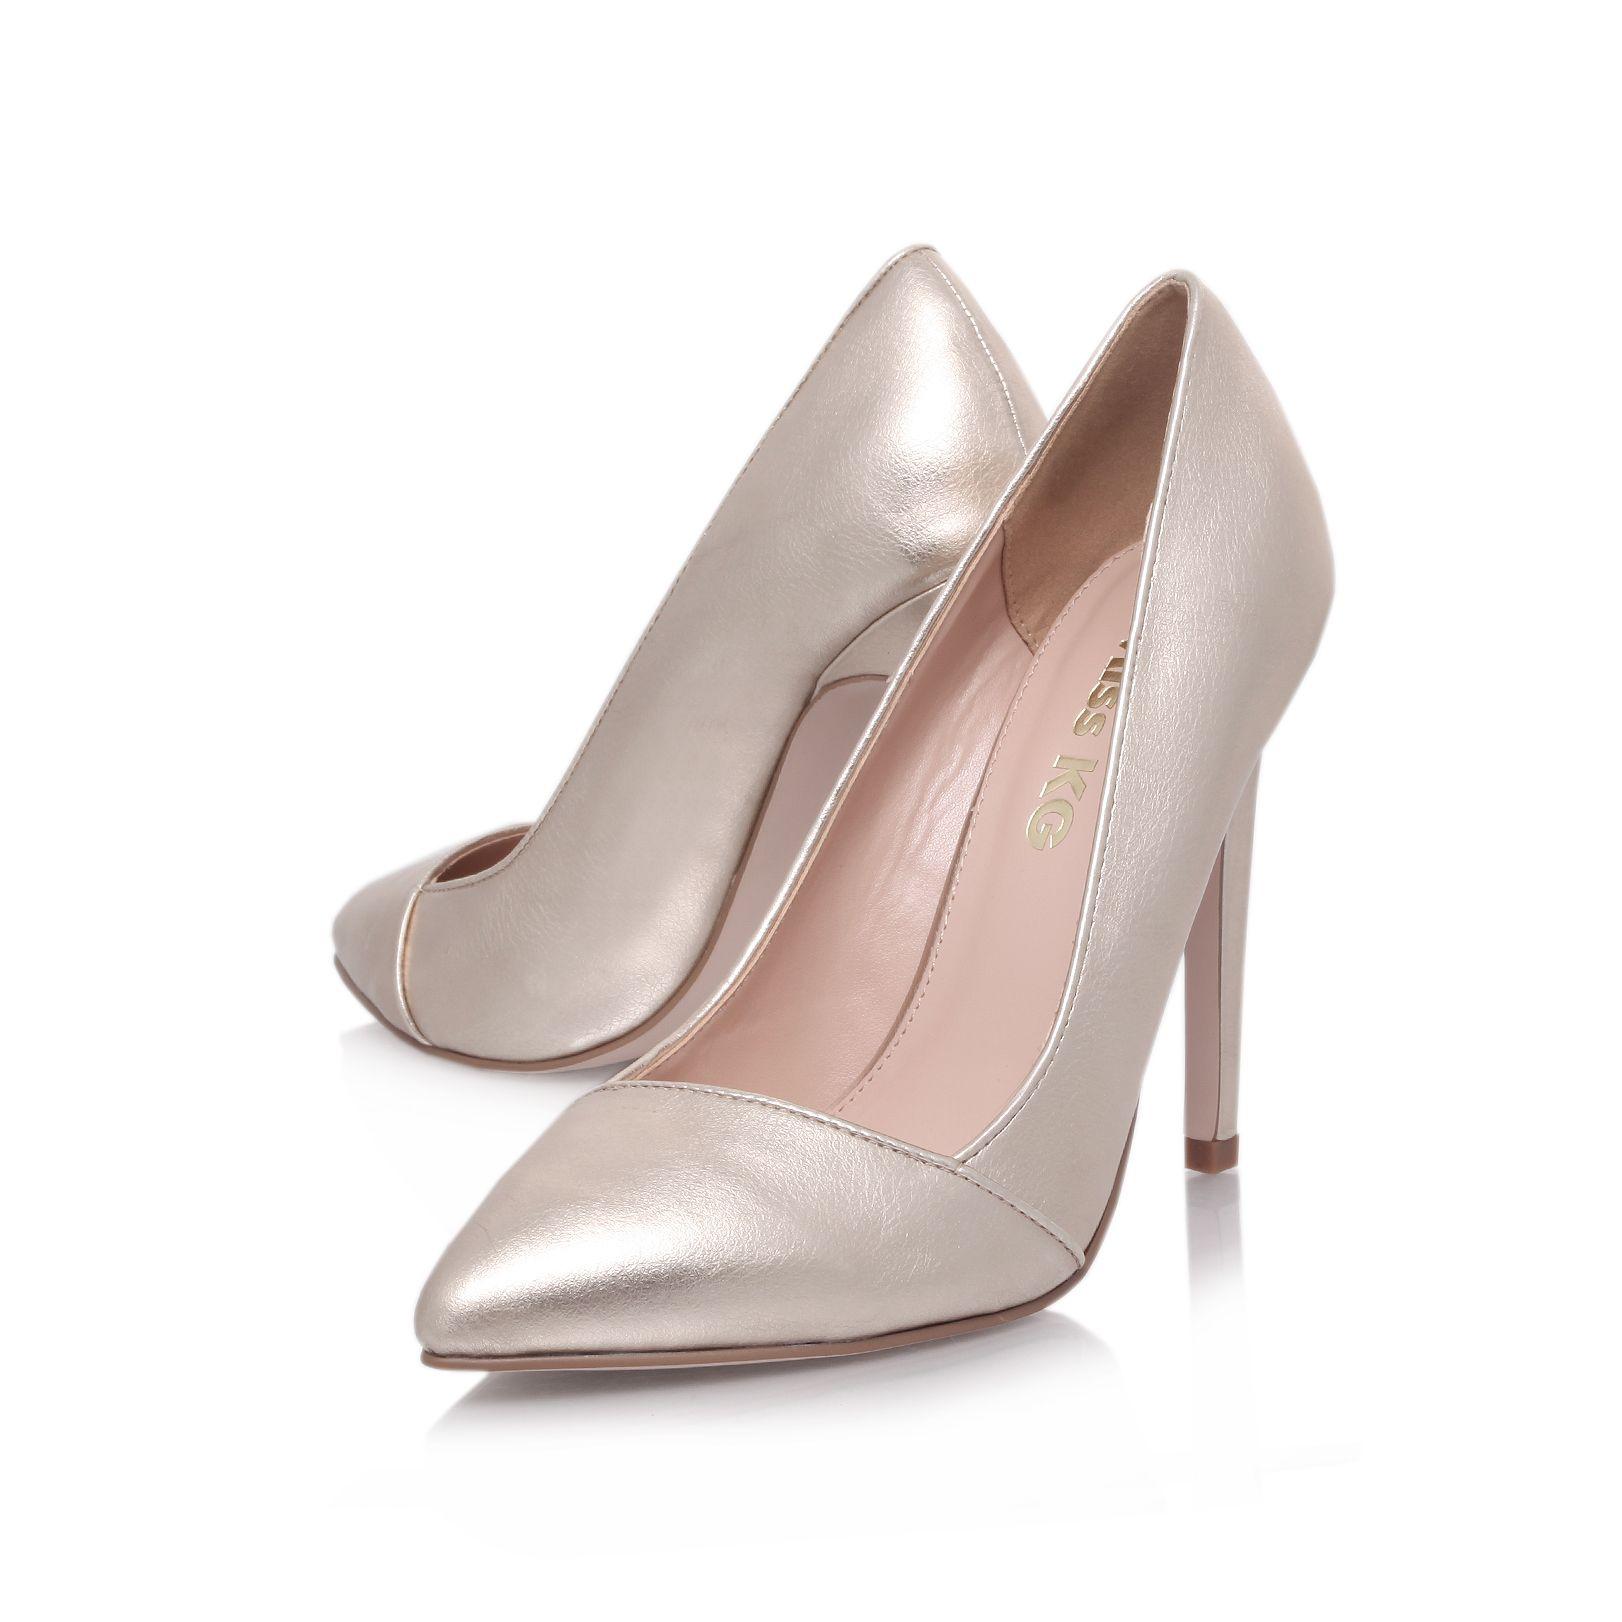 Eden high heel court shoes